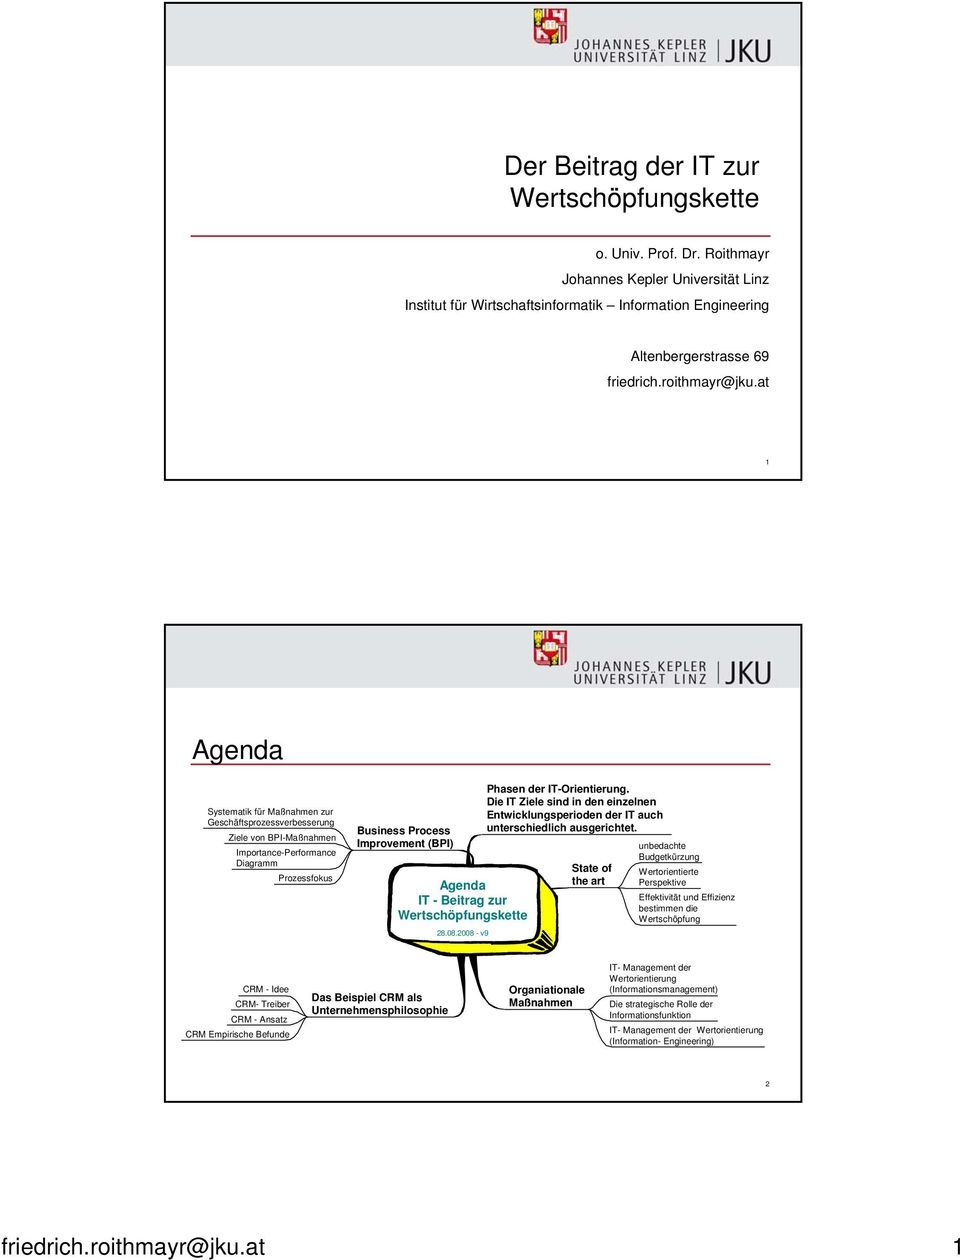 at 1 Agenda Systematik für Maßnahmen zur Geschäftsprozessverbesserung Ziele von BPI-Maßnahmen Importance-Performance Diagramm Prozessfokus Business Process Improvement (BPI) Agenda IT - Beitrag zur